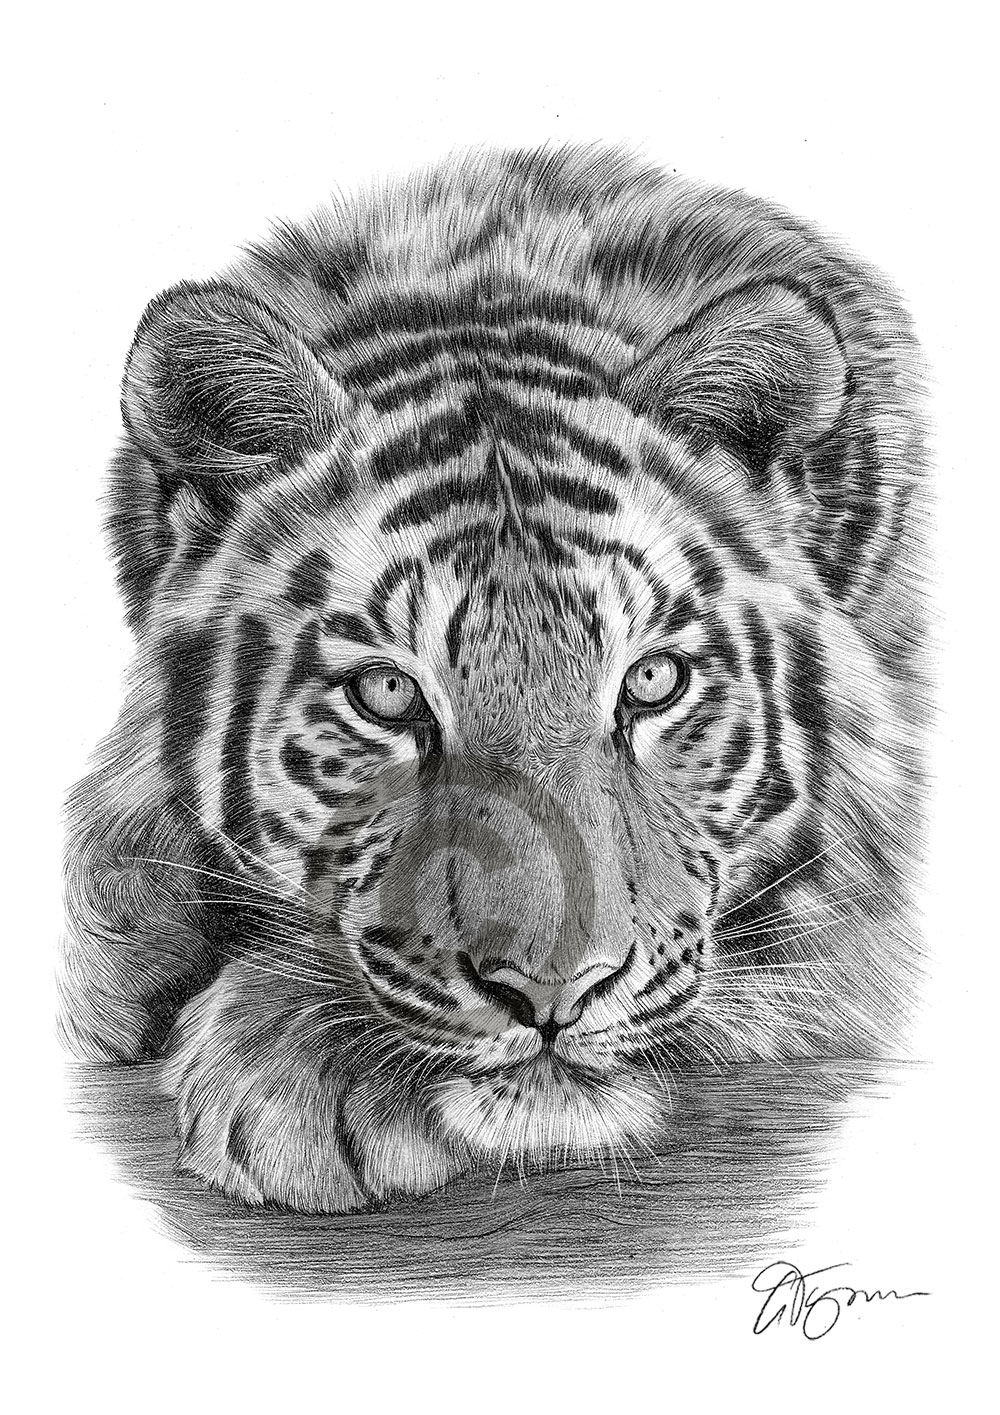 tiger drawing 12 top tiger tattoo drawings of 2020 petpress drawing tiger